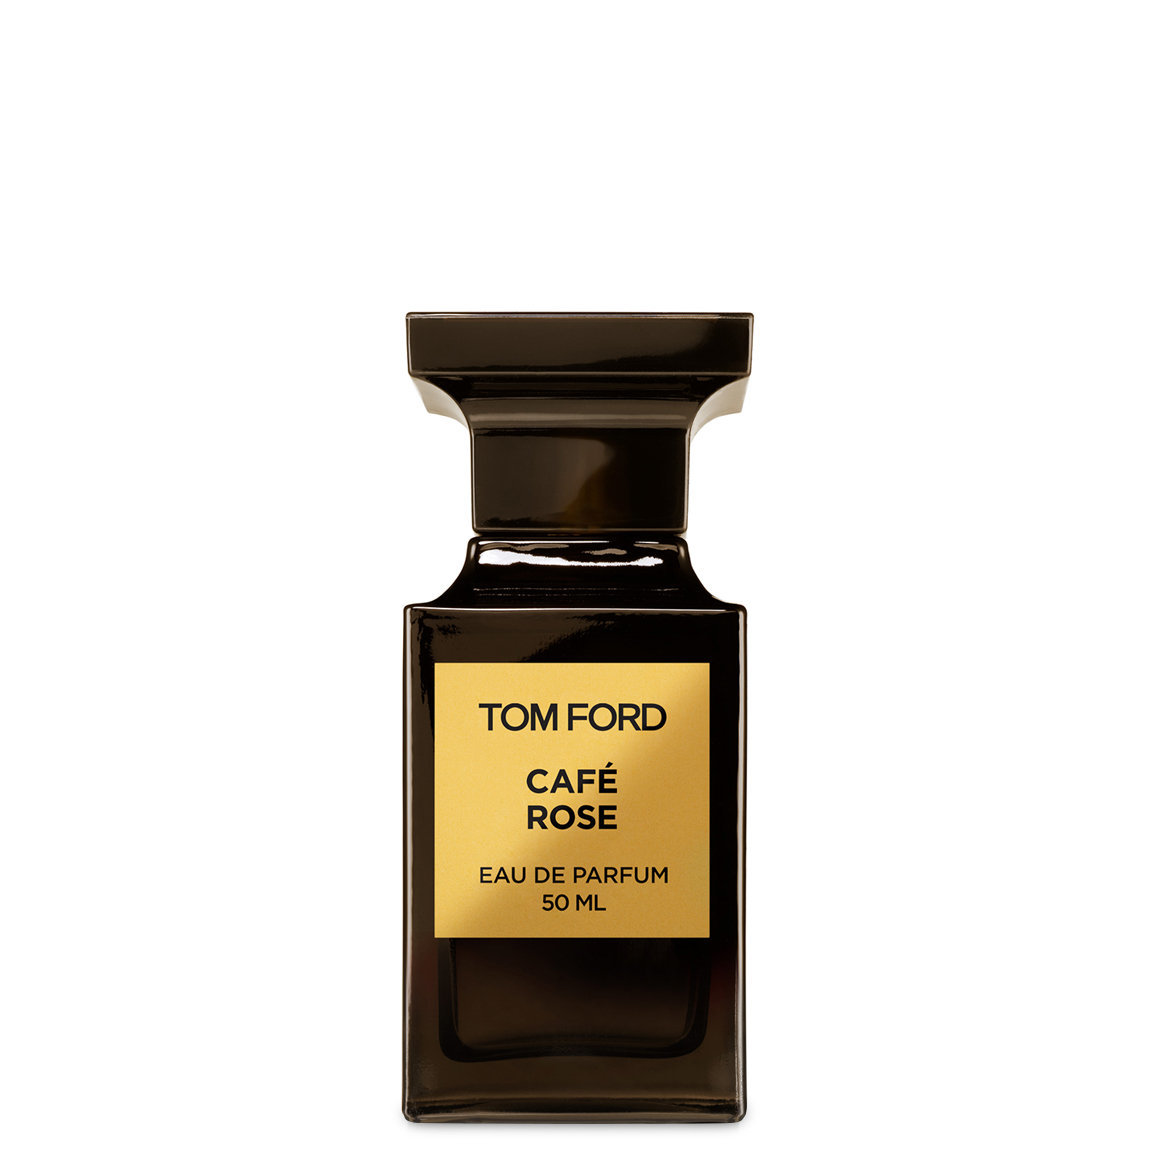 TOM FORD Café Rose 50 ml product swatch.